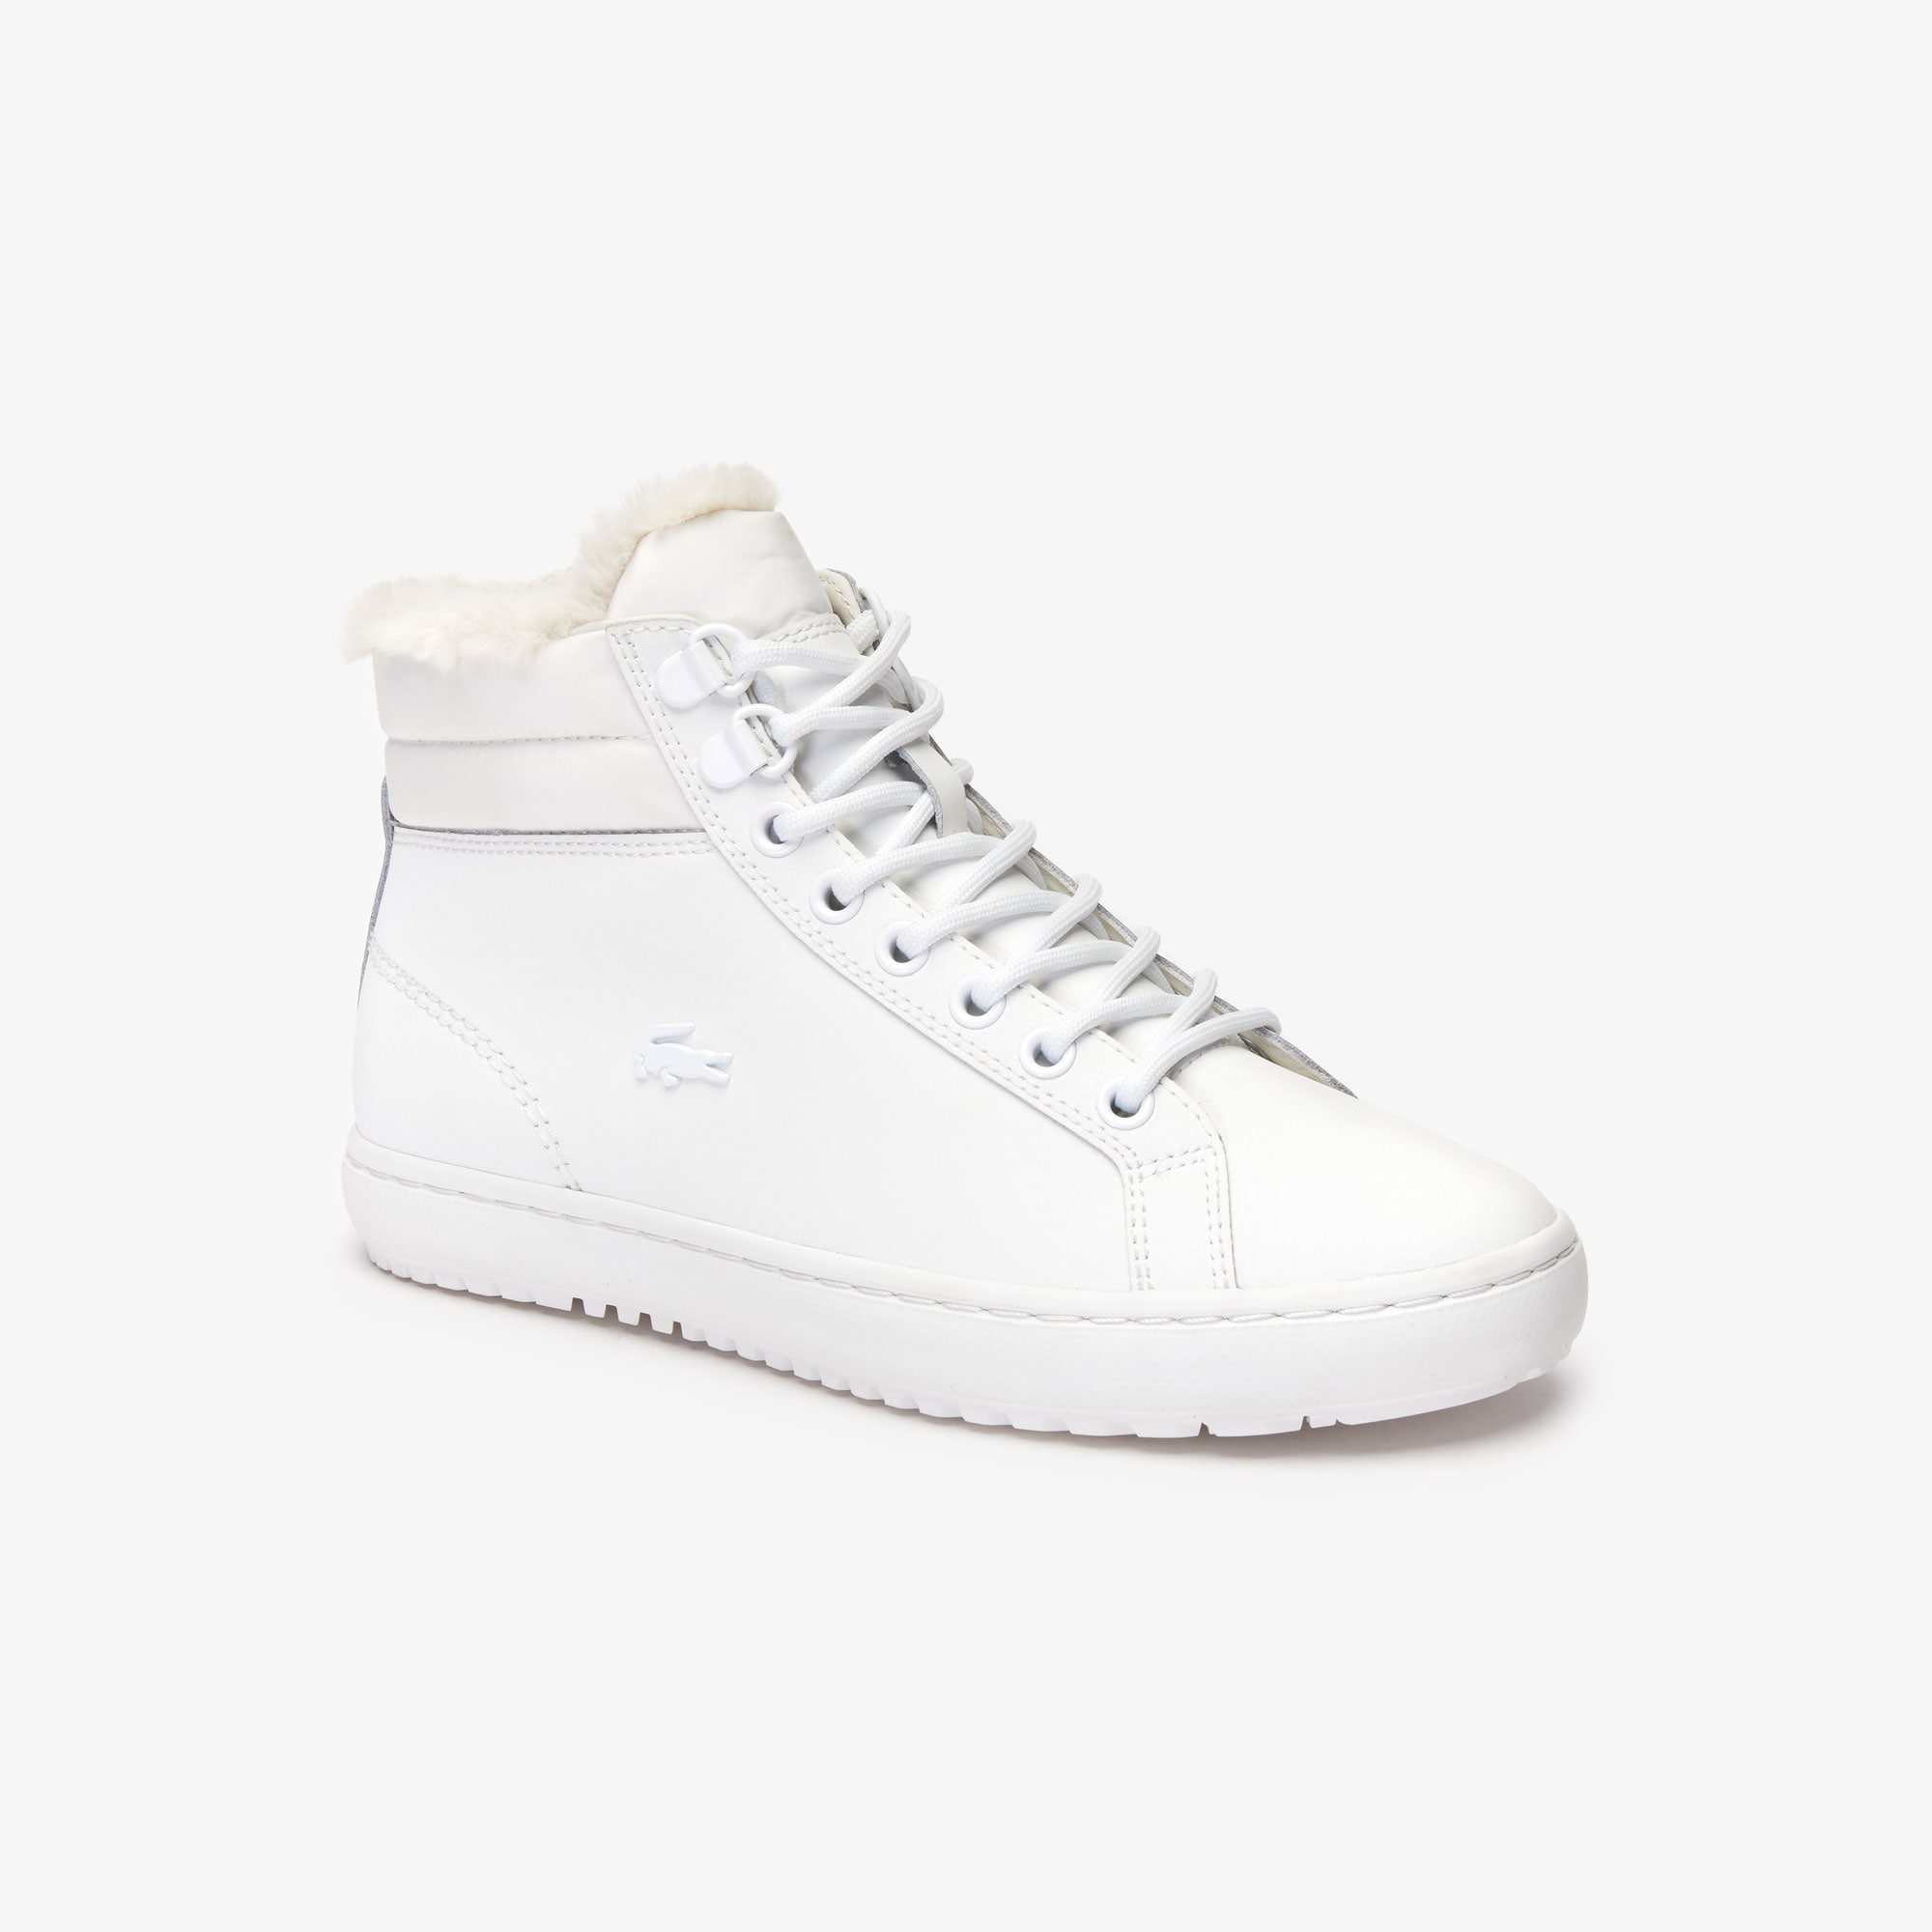 Lacoste Boots Women's Straightset Thermo Leather Boots